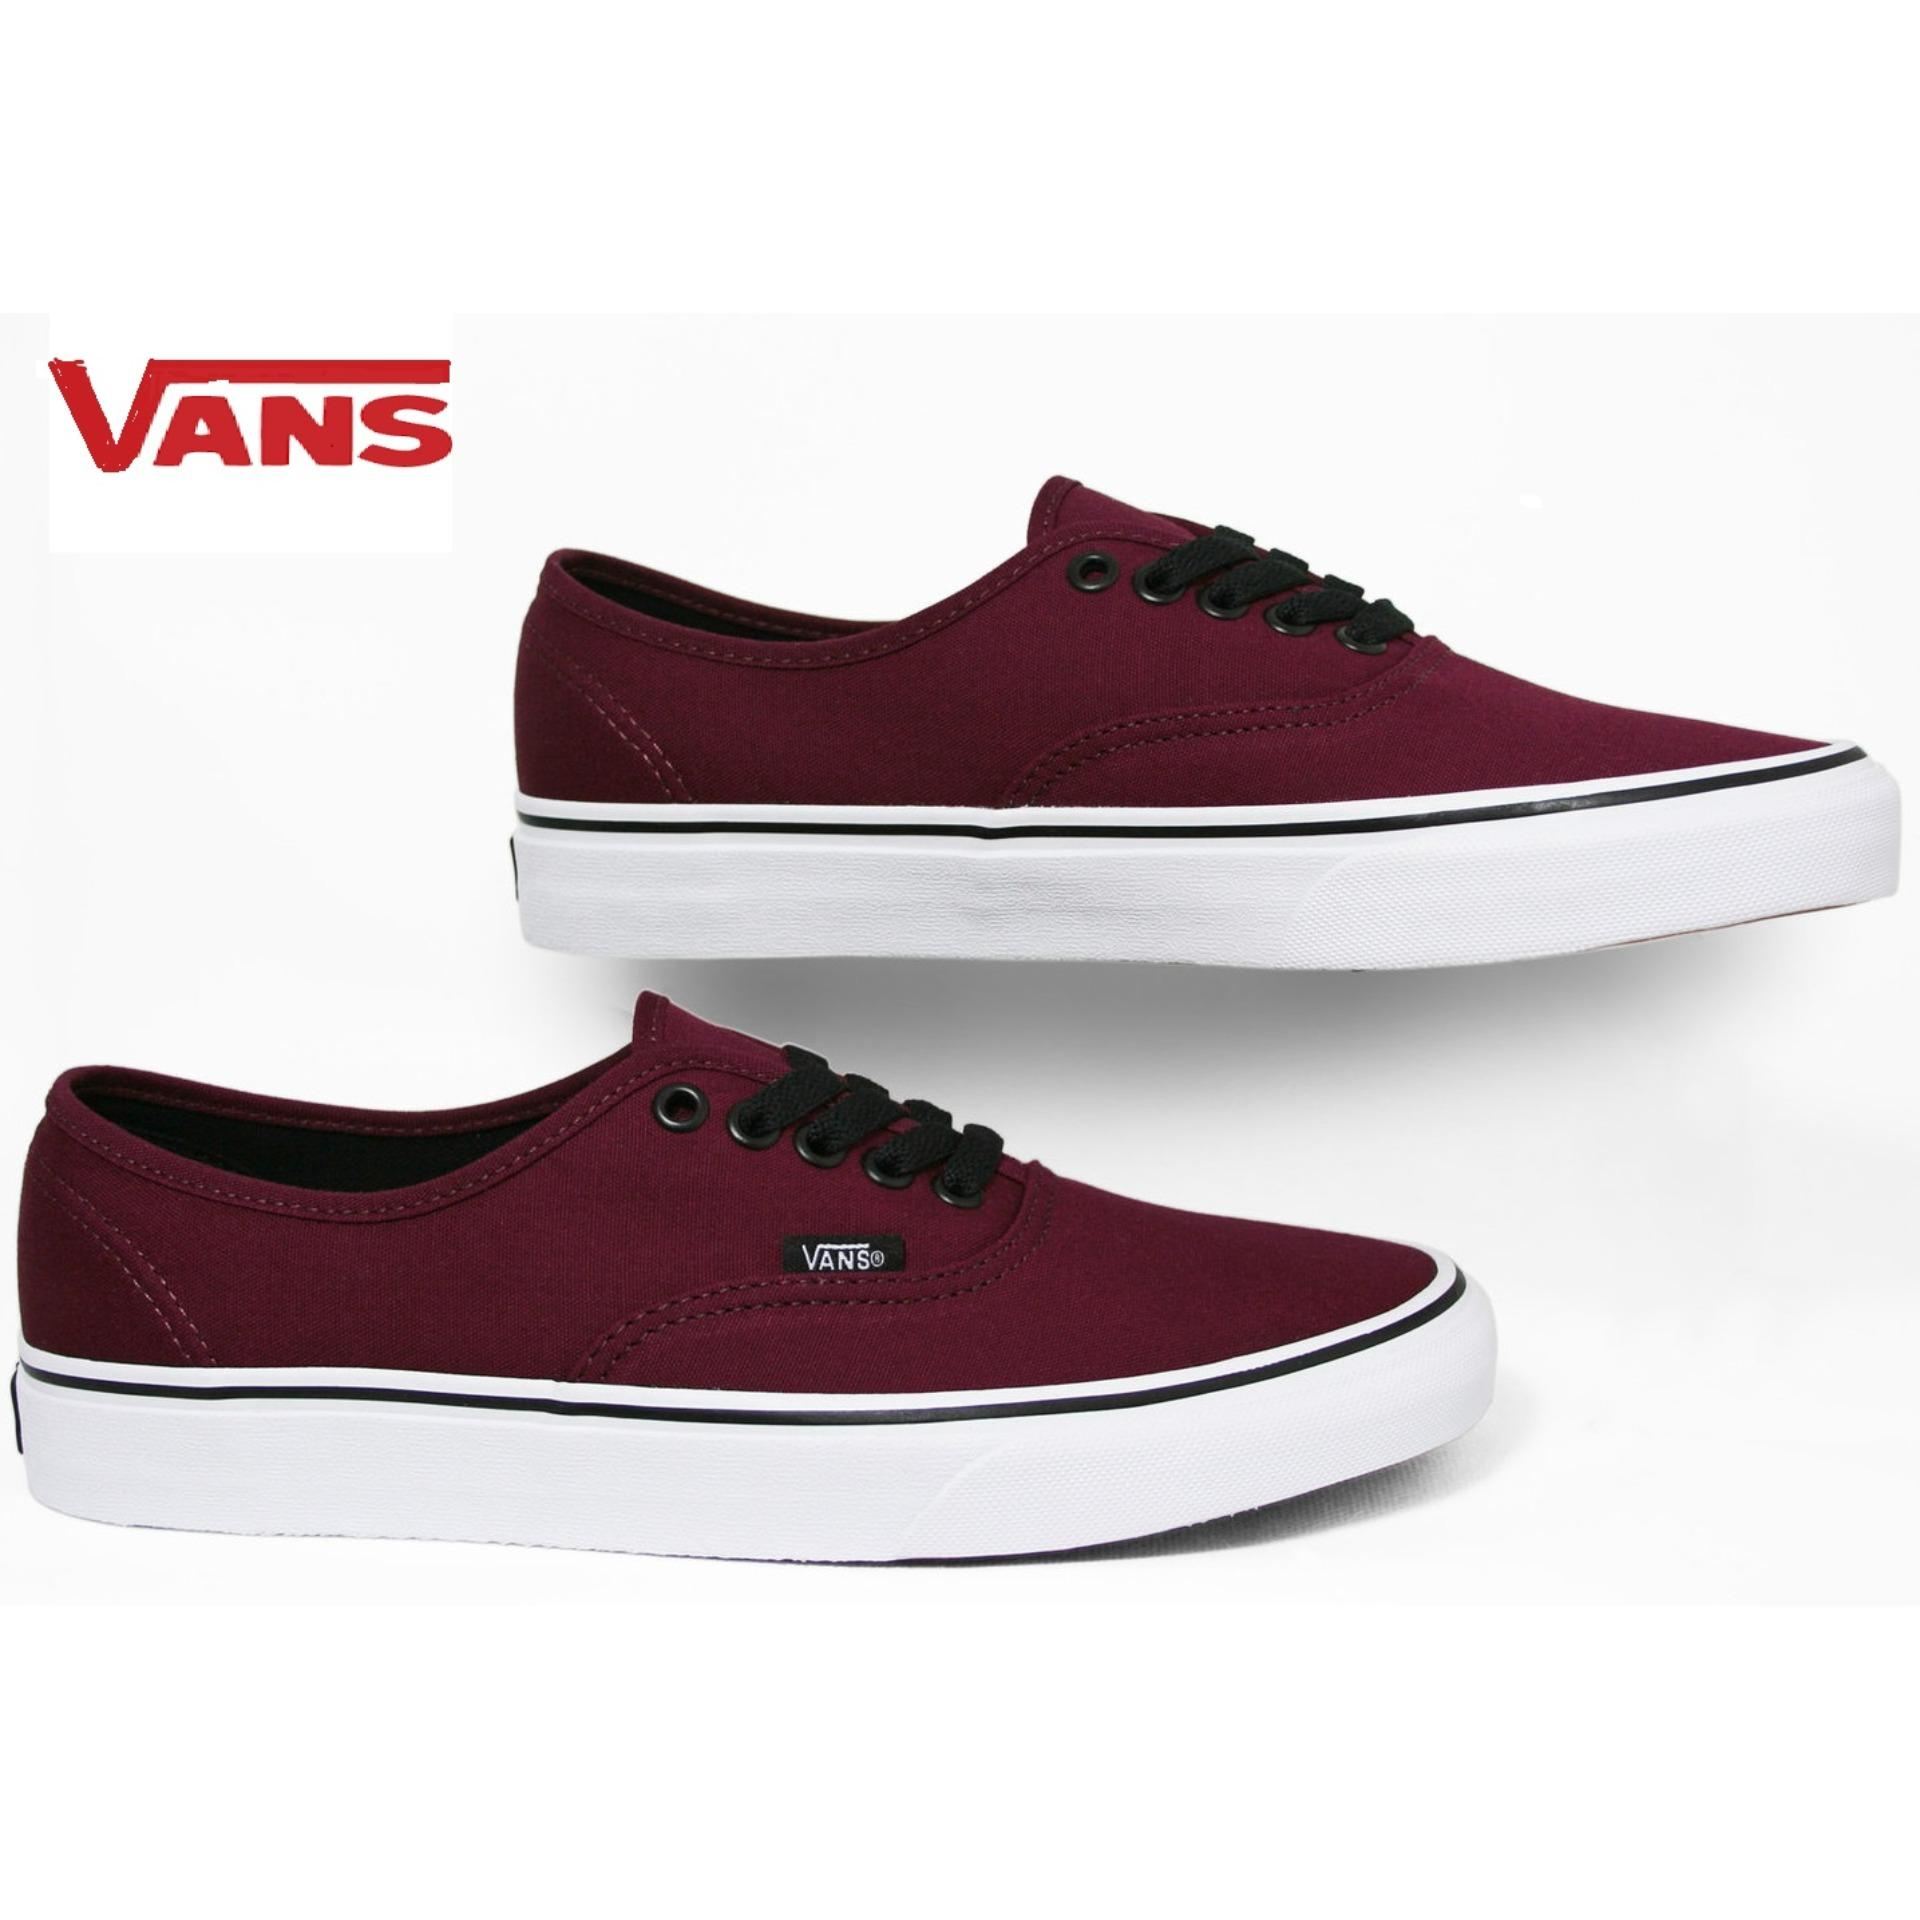 3Ksport- Sepatu Vens California Canvas Unisex Skateboard